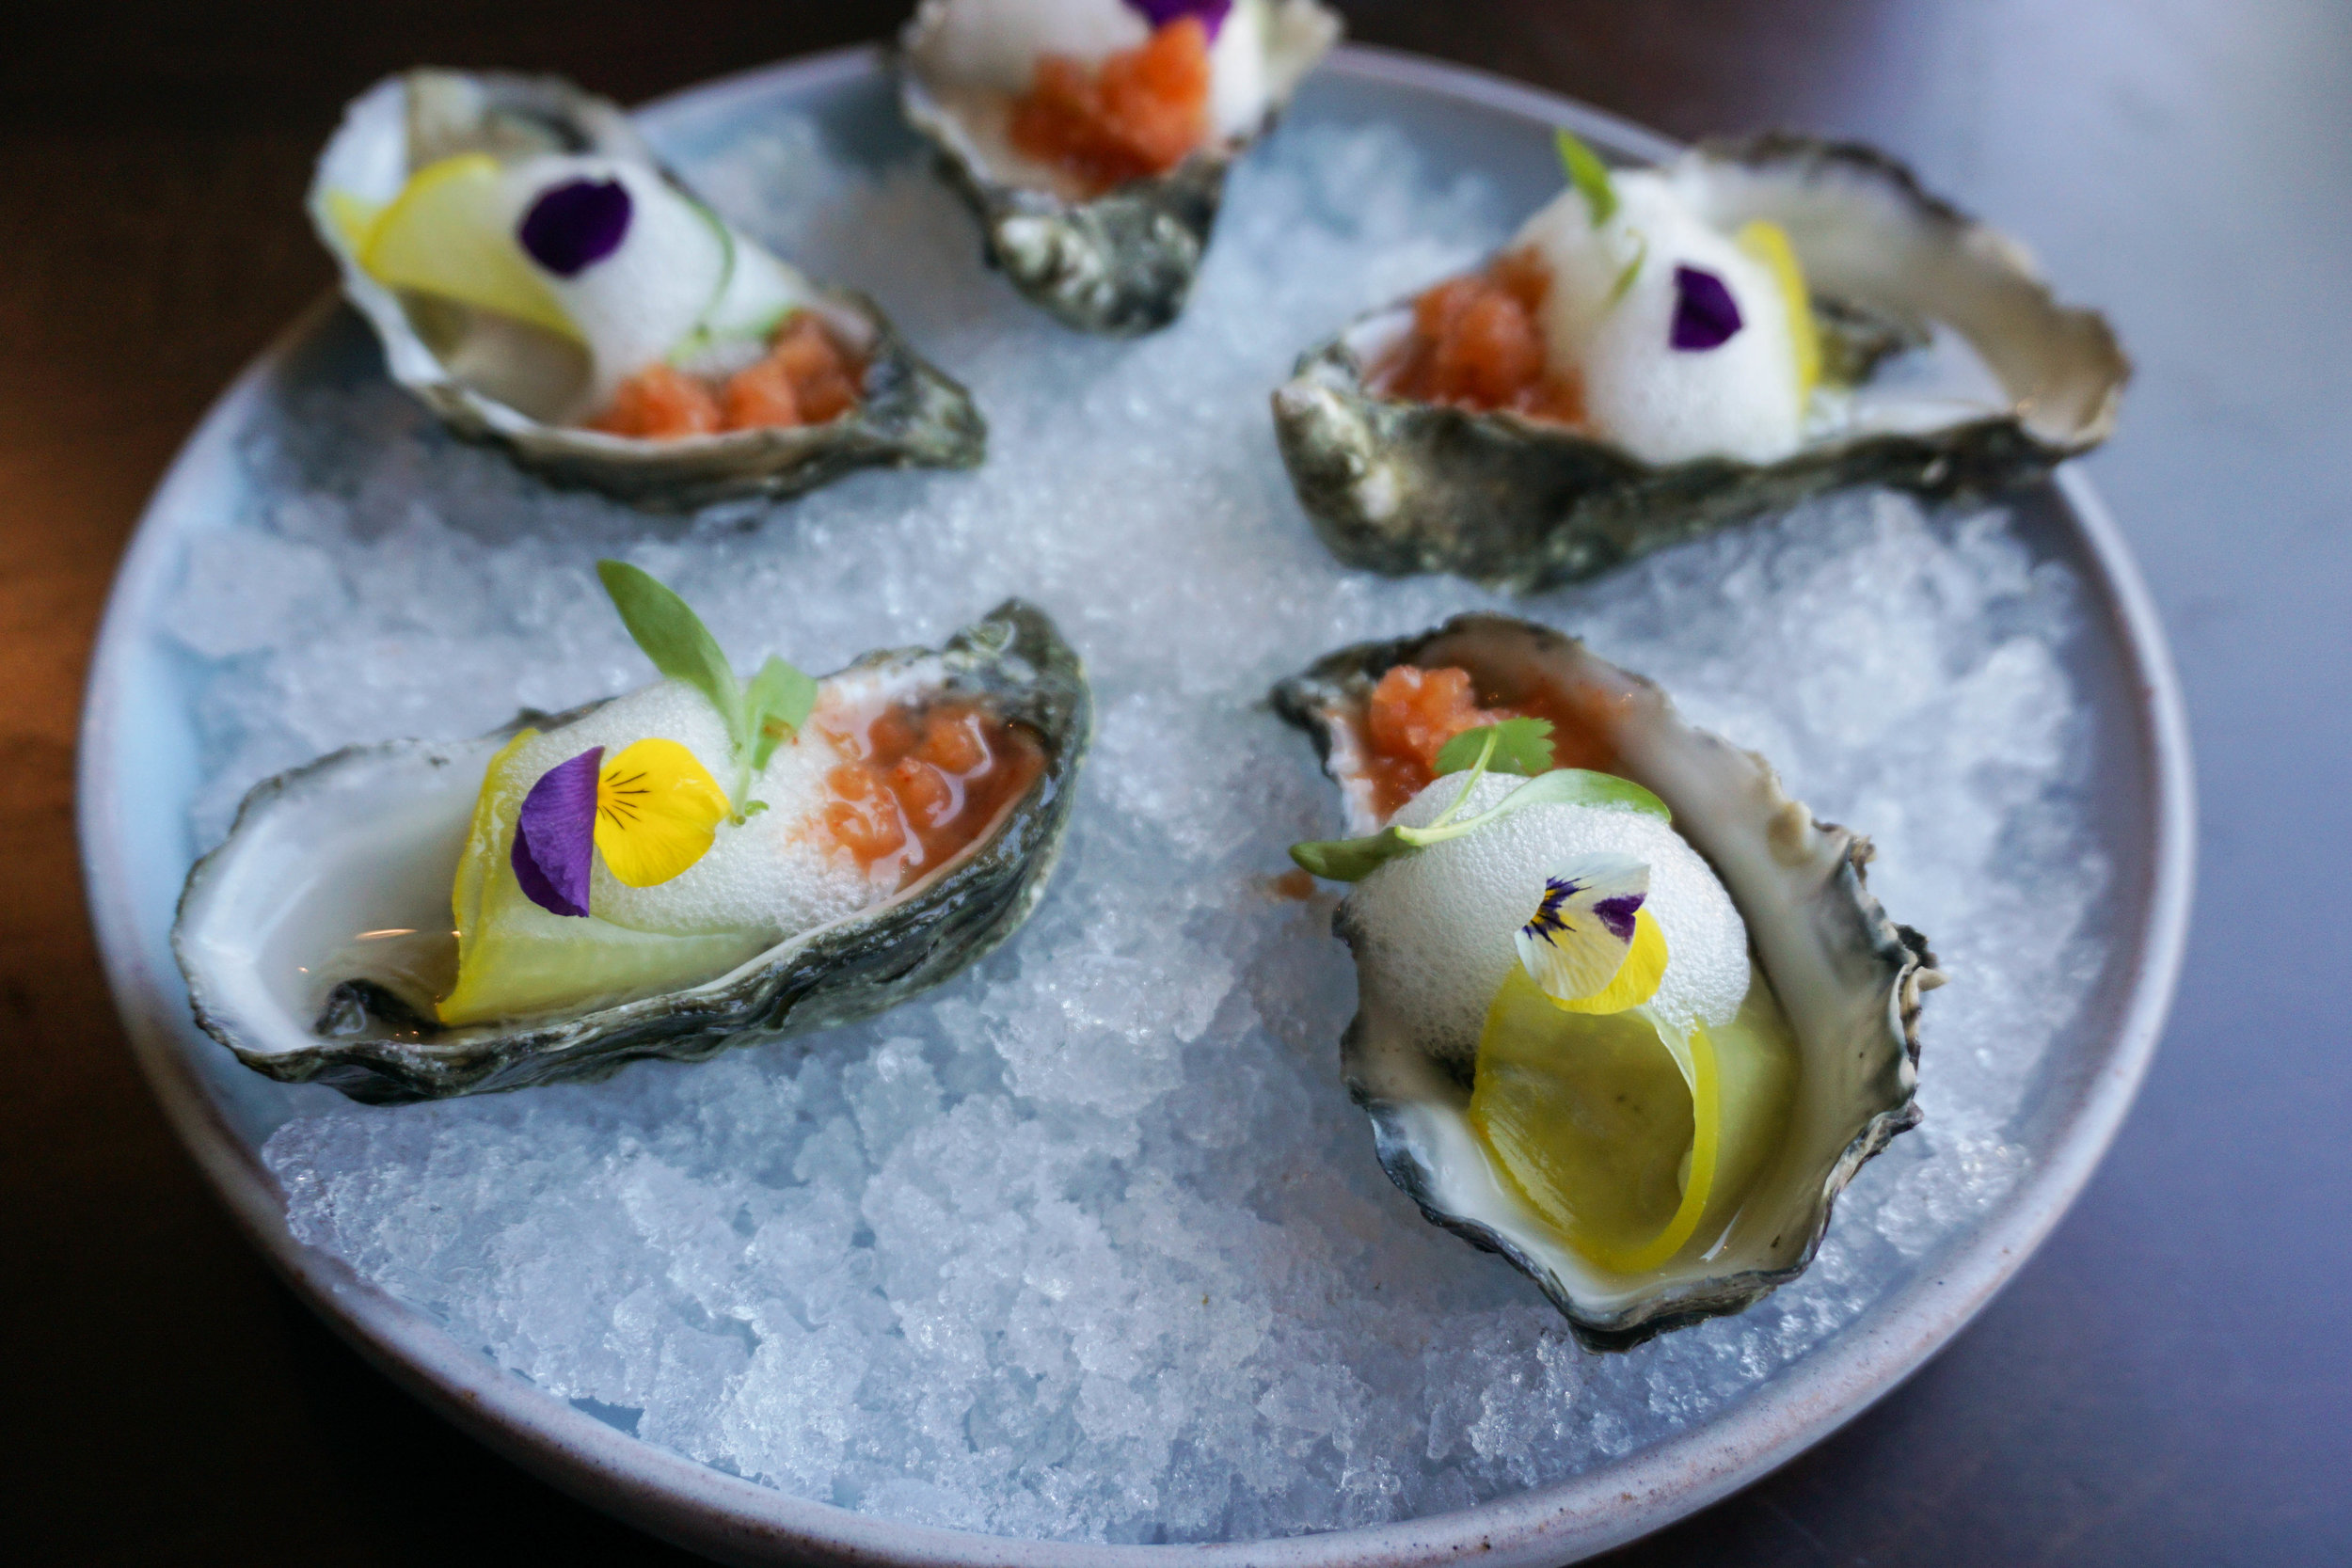 Oysters (off the menu item)